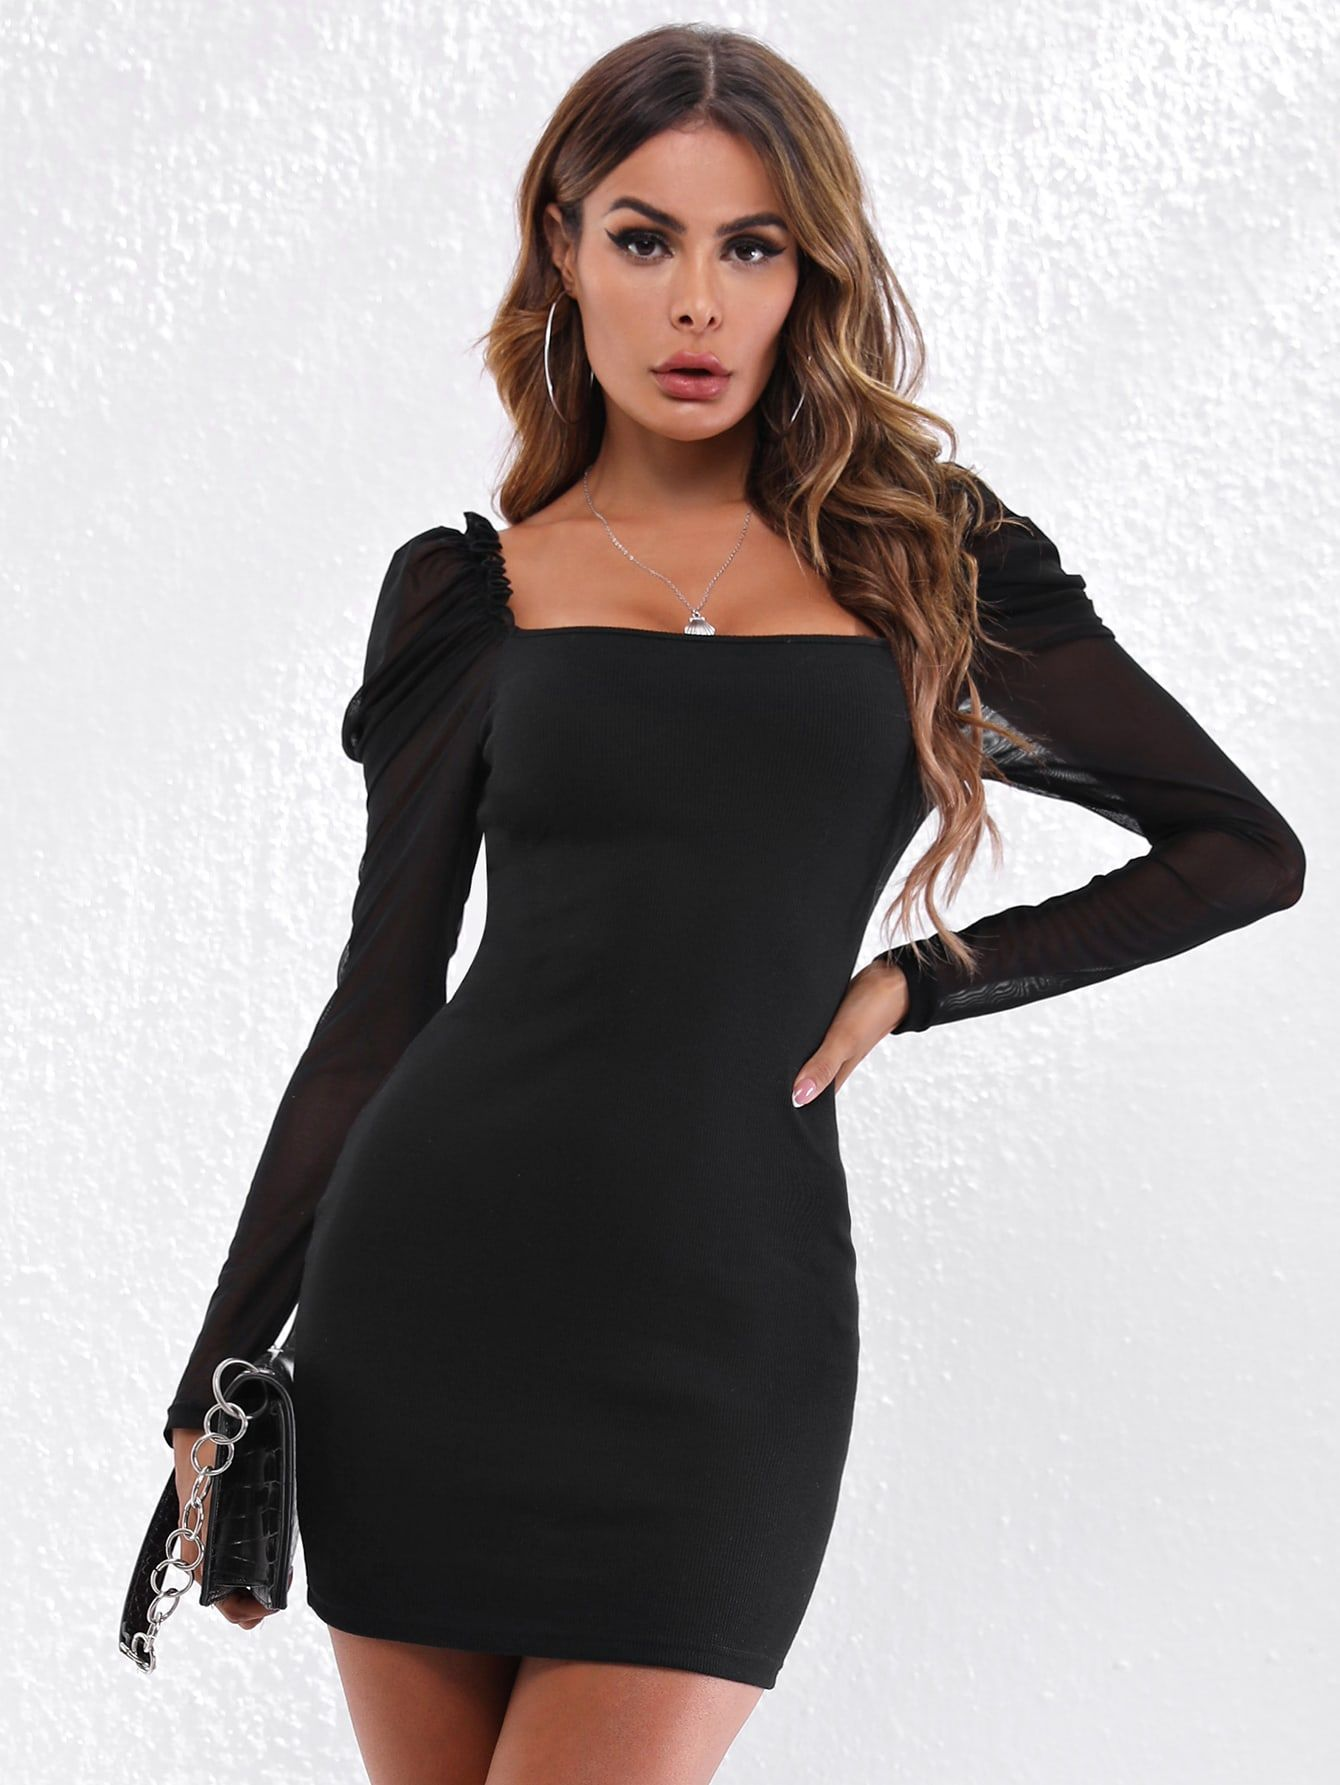 Sheer Sleeve Bodycon Dress In 2021 Bodycon Dress Bodycon Dress With Sleeves Tight Dresses [ 1785 x 1340 Pixel ]